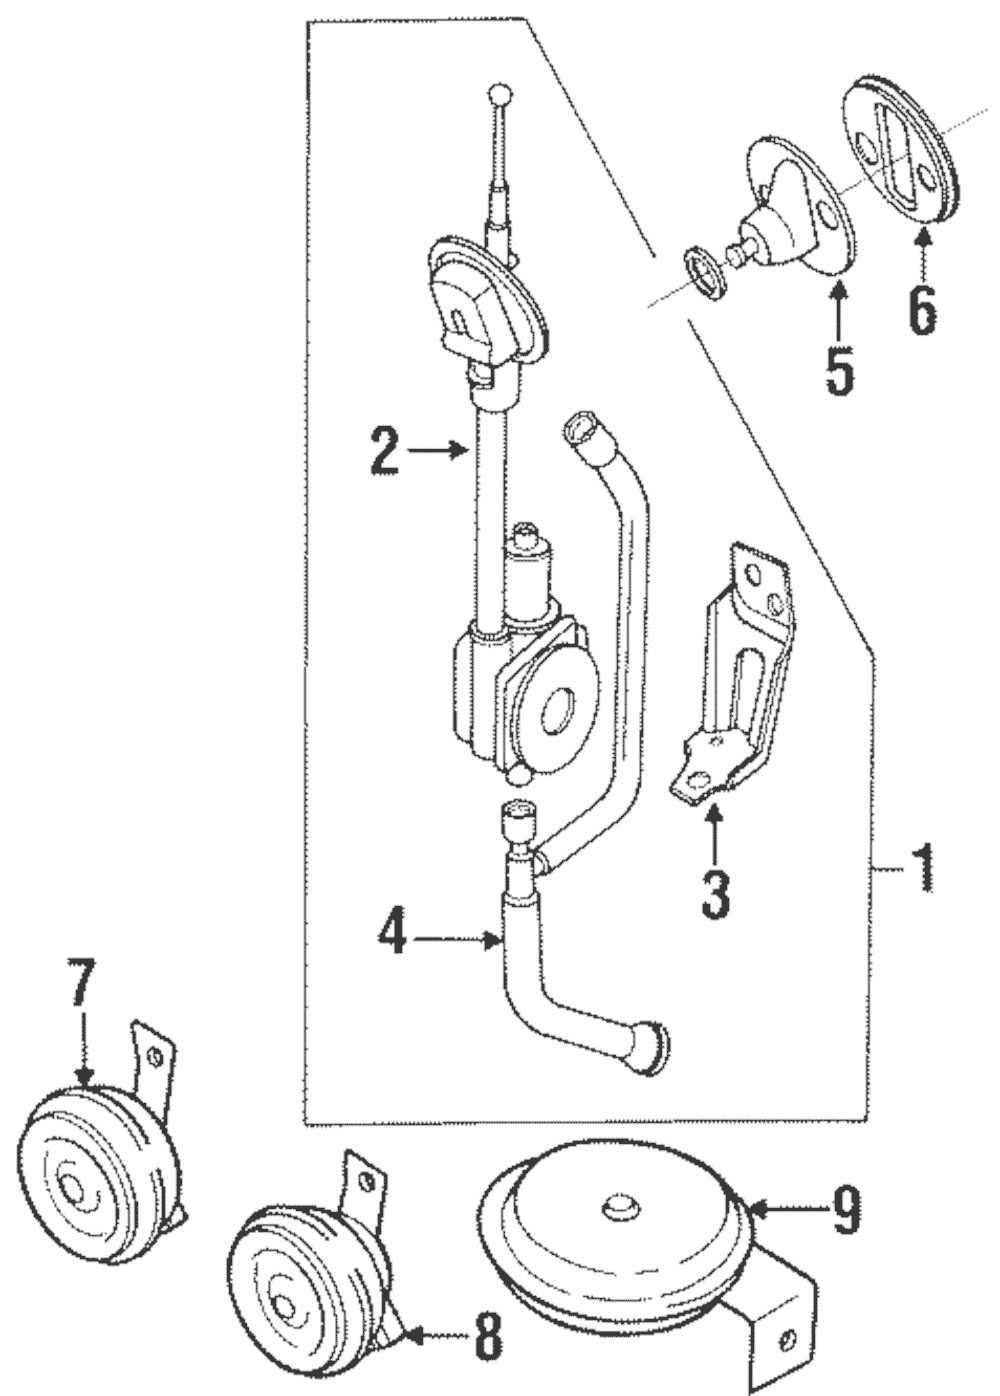 Part can be found as 2 in the diagram above genuine nissan parts